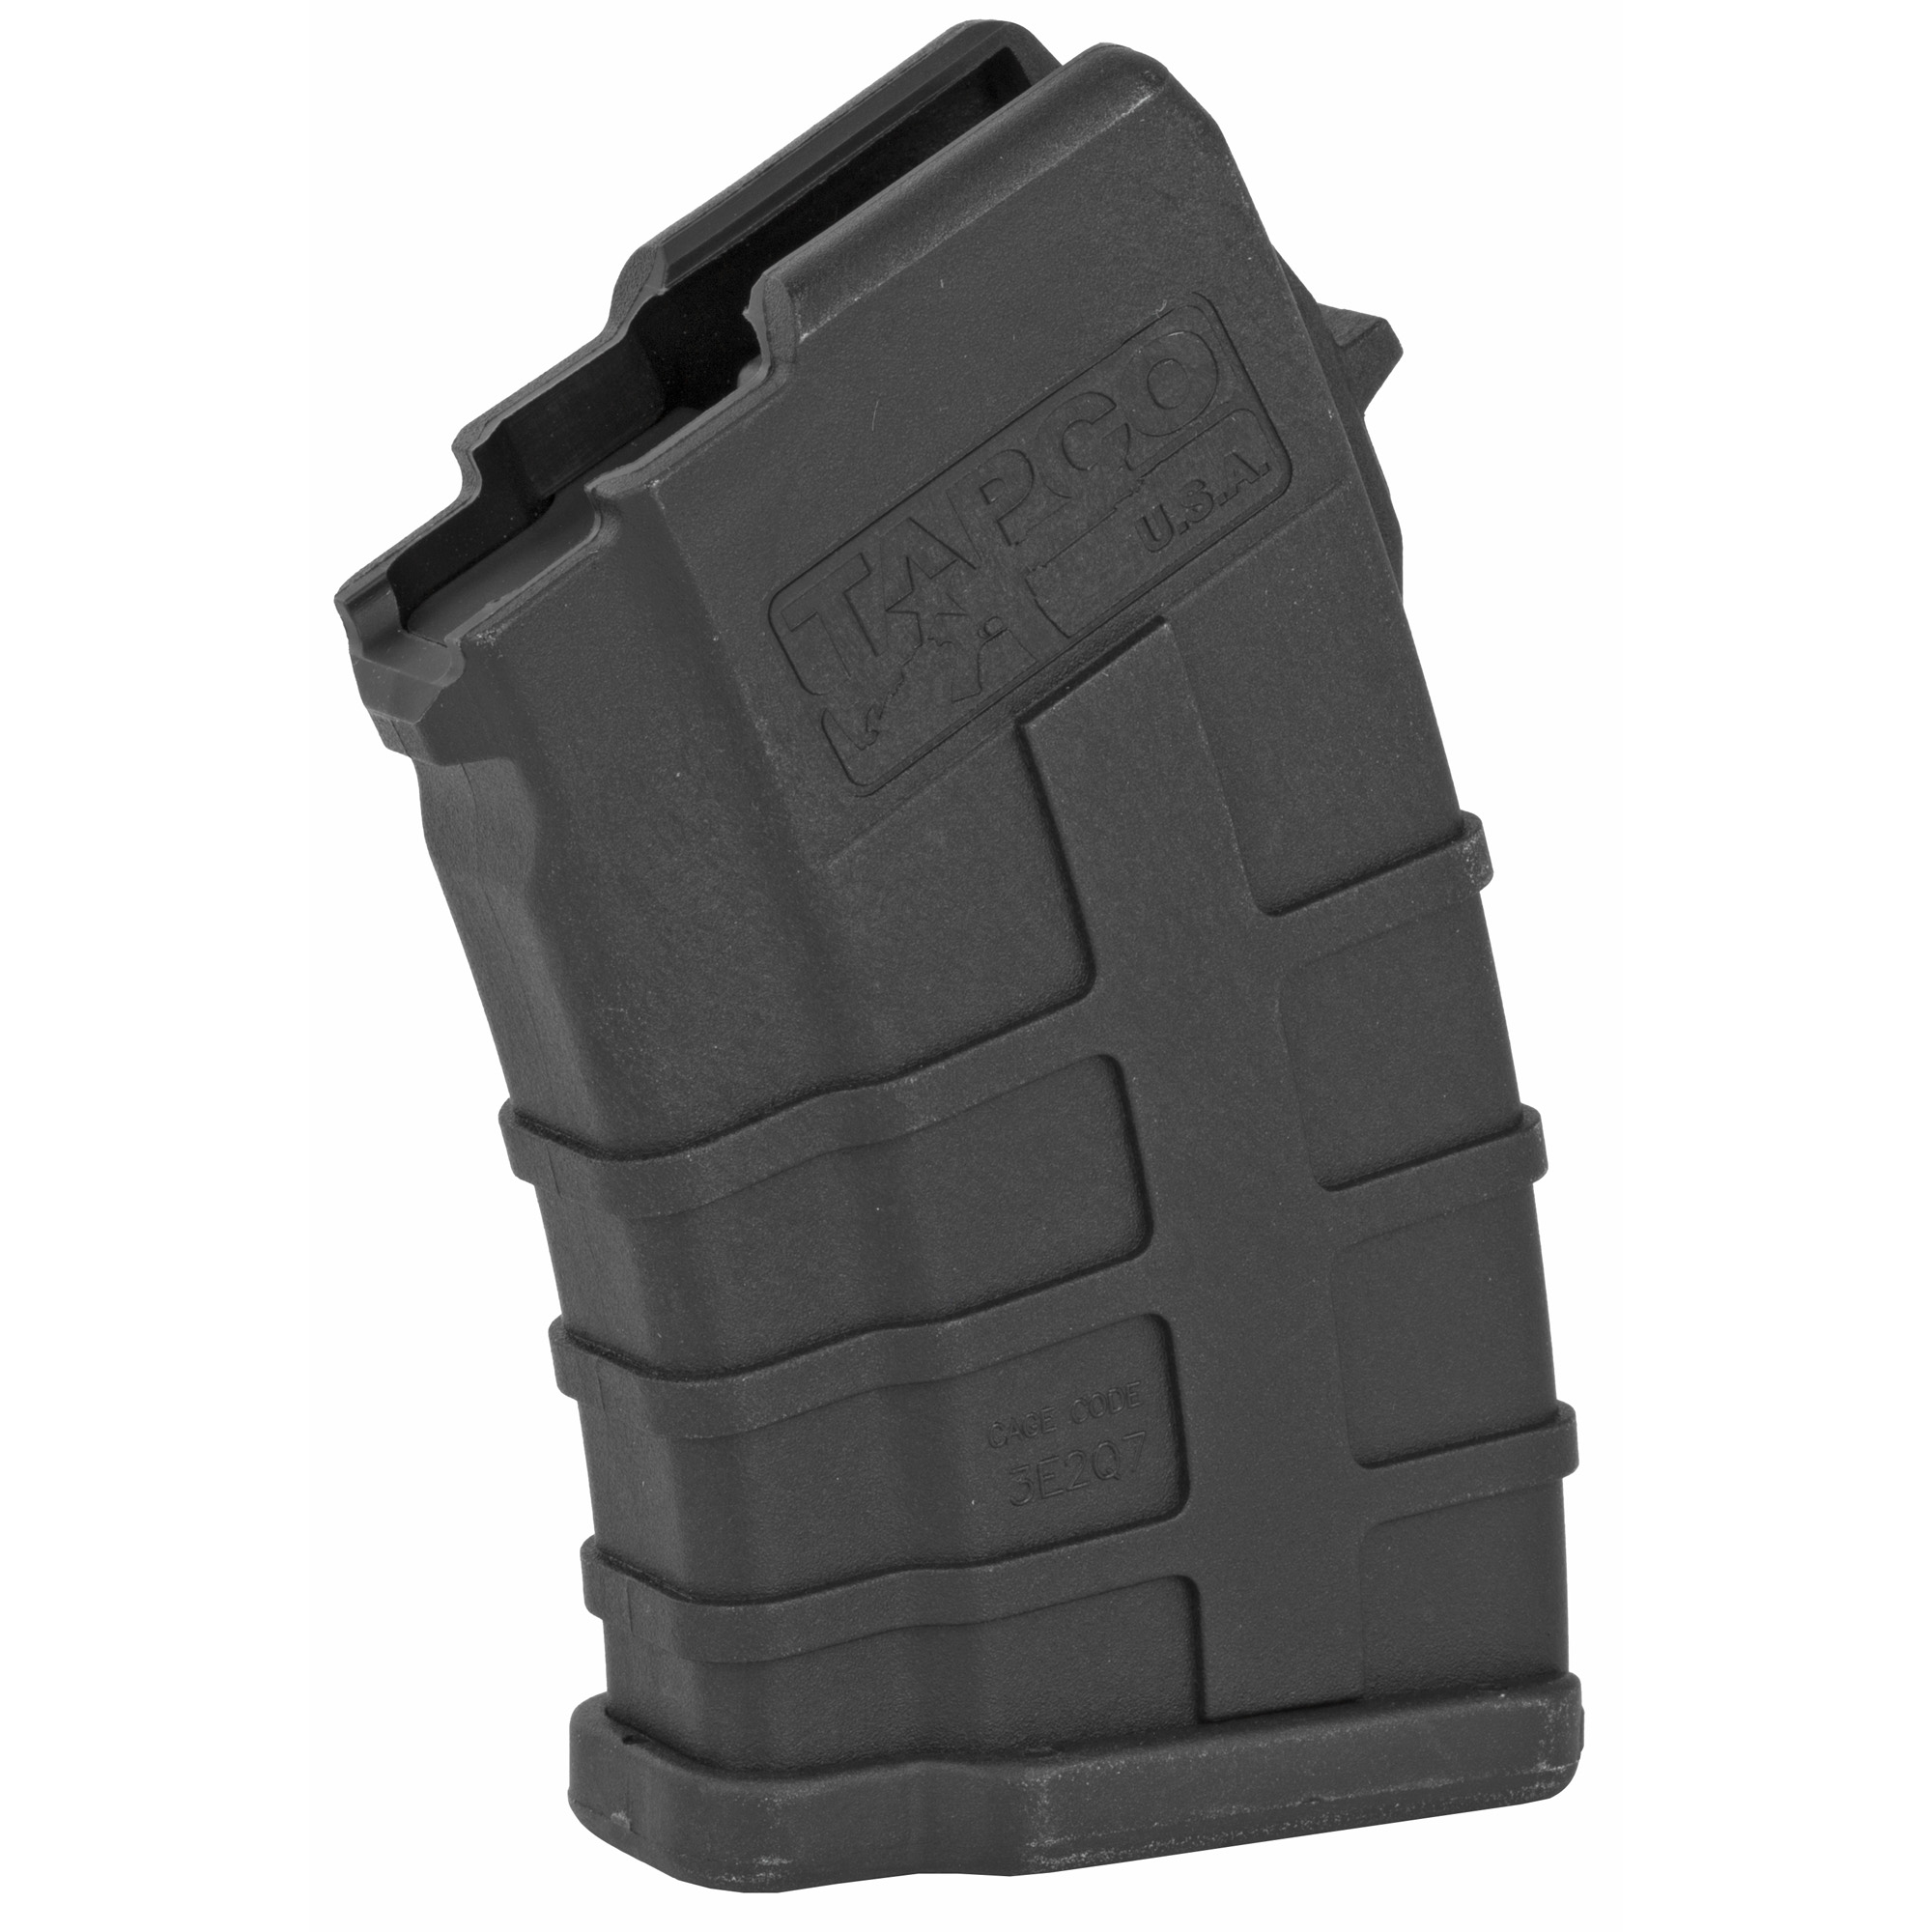 Can't find a rugged and reliable low capacity AK mag? The Tapco 10rd AK-47 Magazine is your answer. The reinforced composite material prevents corrosion while the heavy duty spring and anti-tilt follower ensure that every round will feed perfectly. Fits the AK-47 using 7.62x39mm ammunition. Not to mention that it counts as 3 U.S. 922r compliant parts.